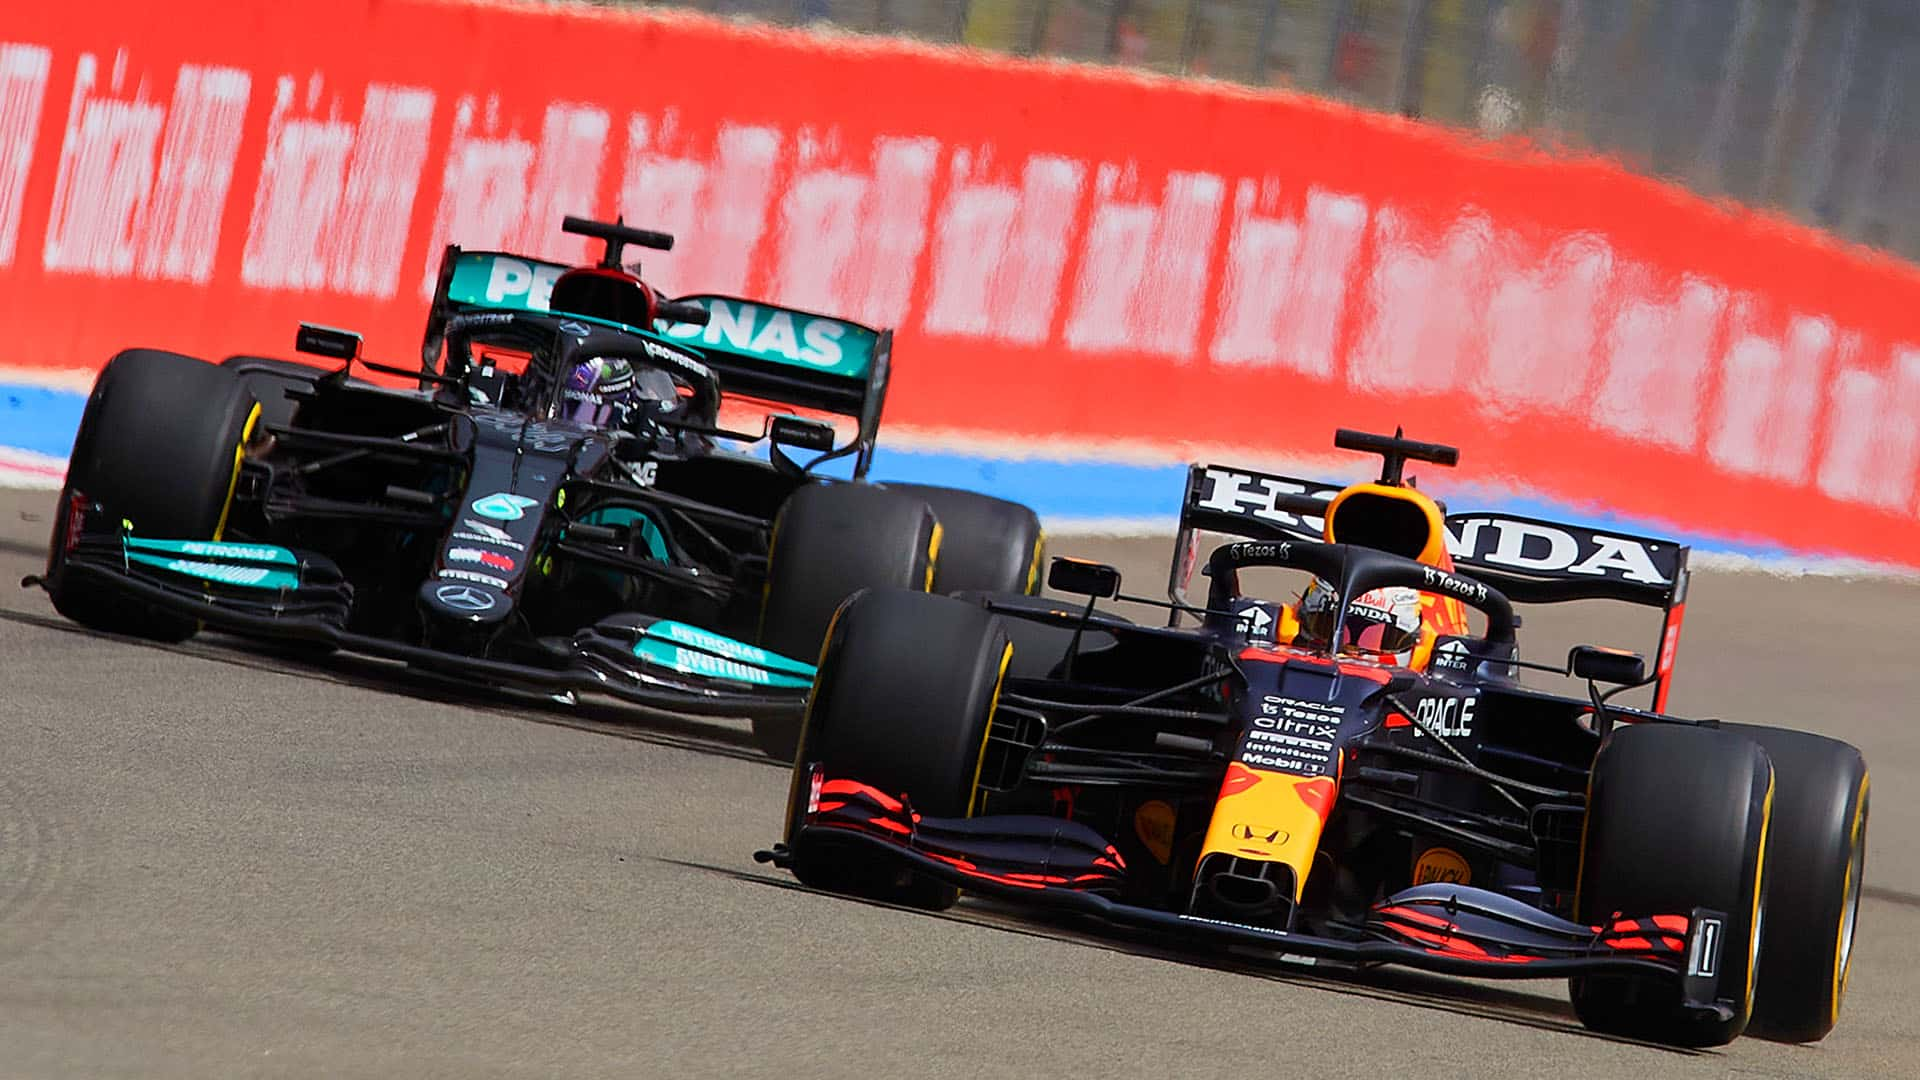 Mercedes and Red Bull are fighting it out for the 2021 drivers' and constructors' titles